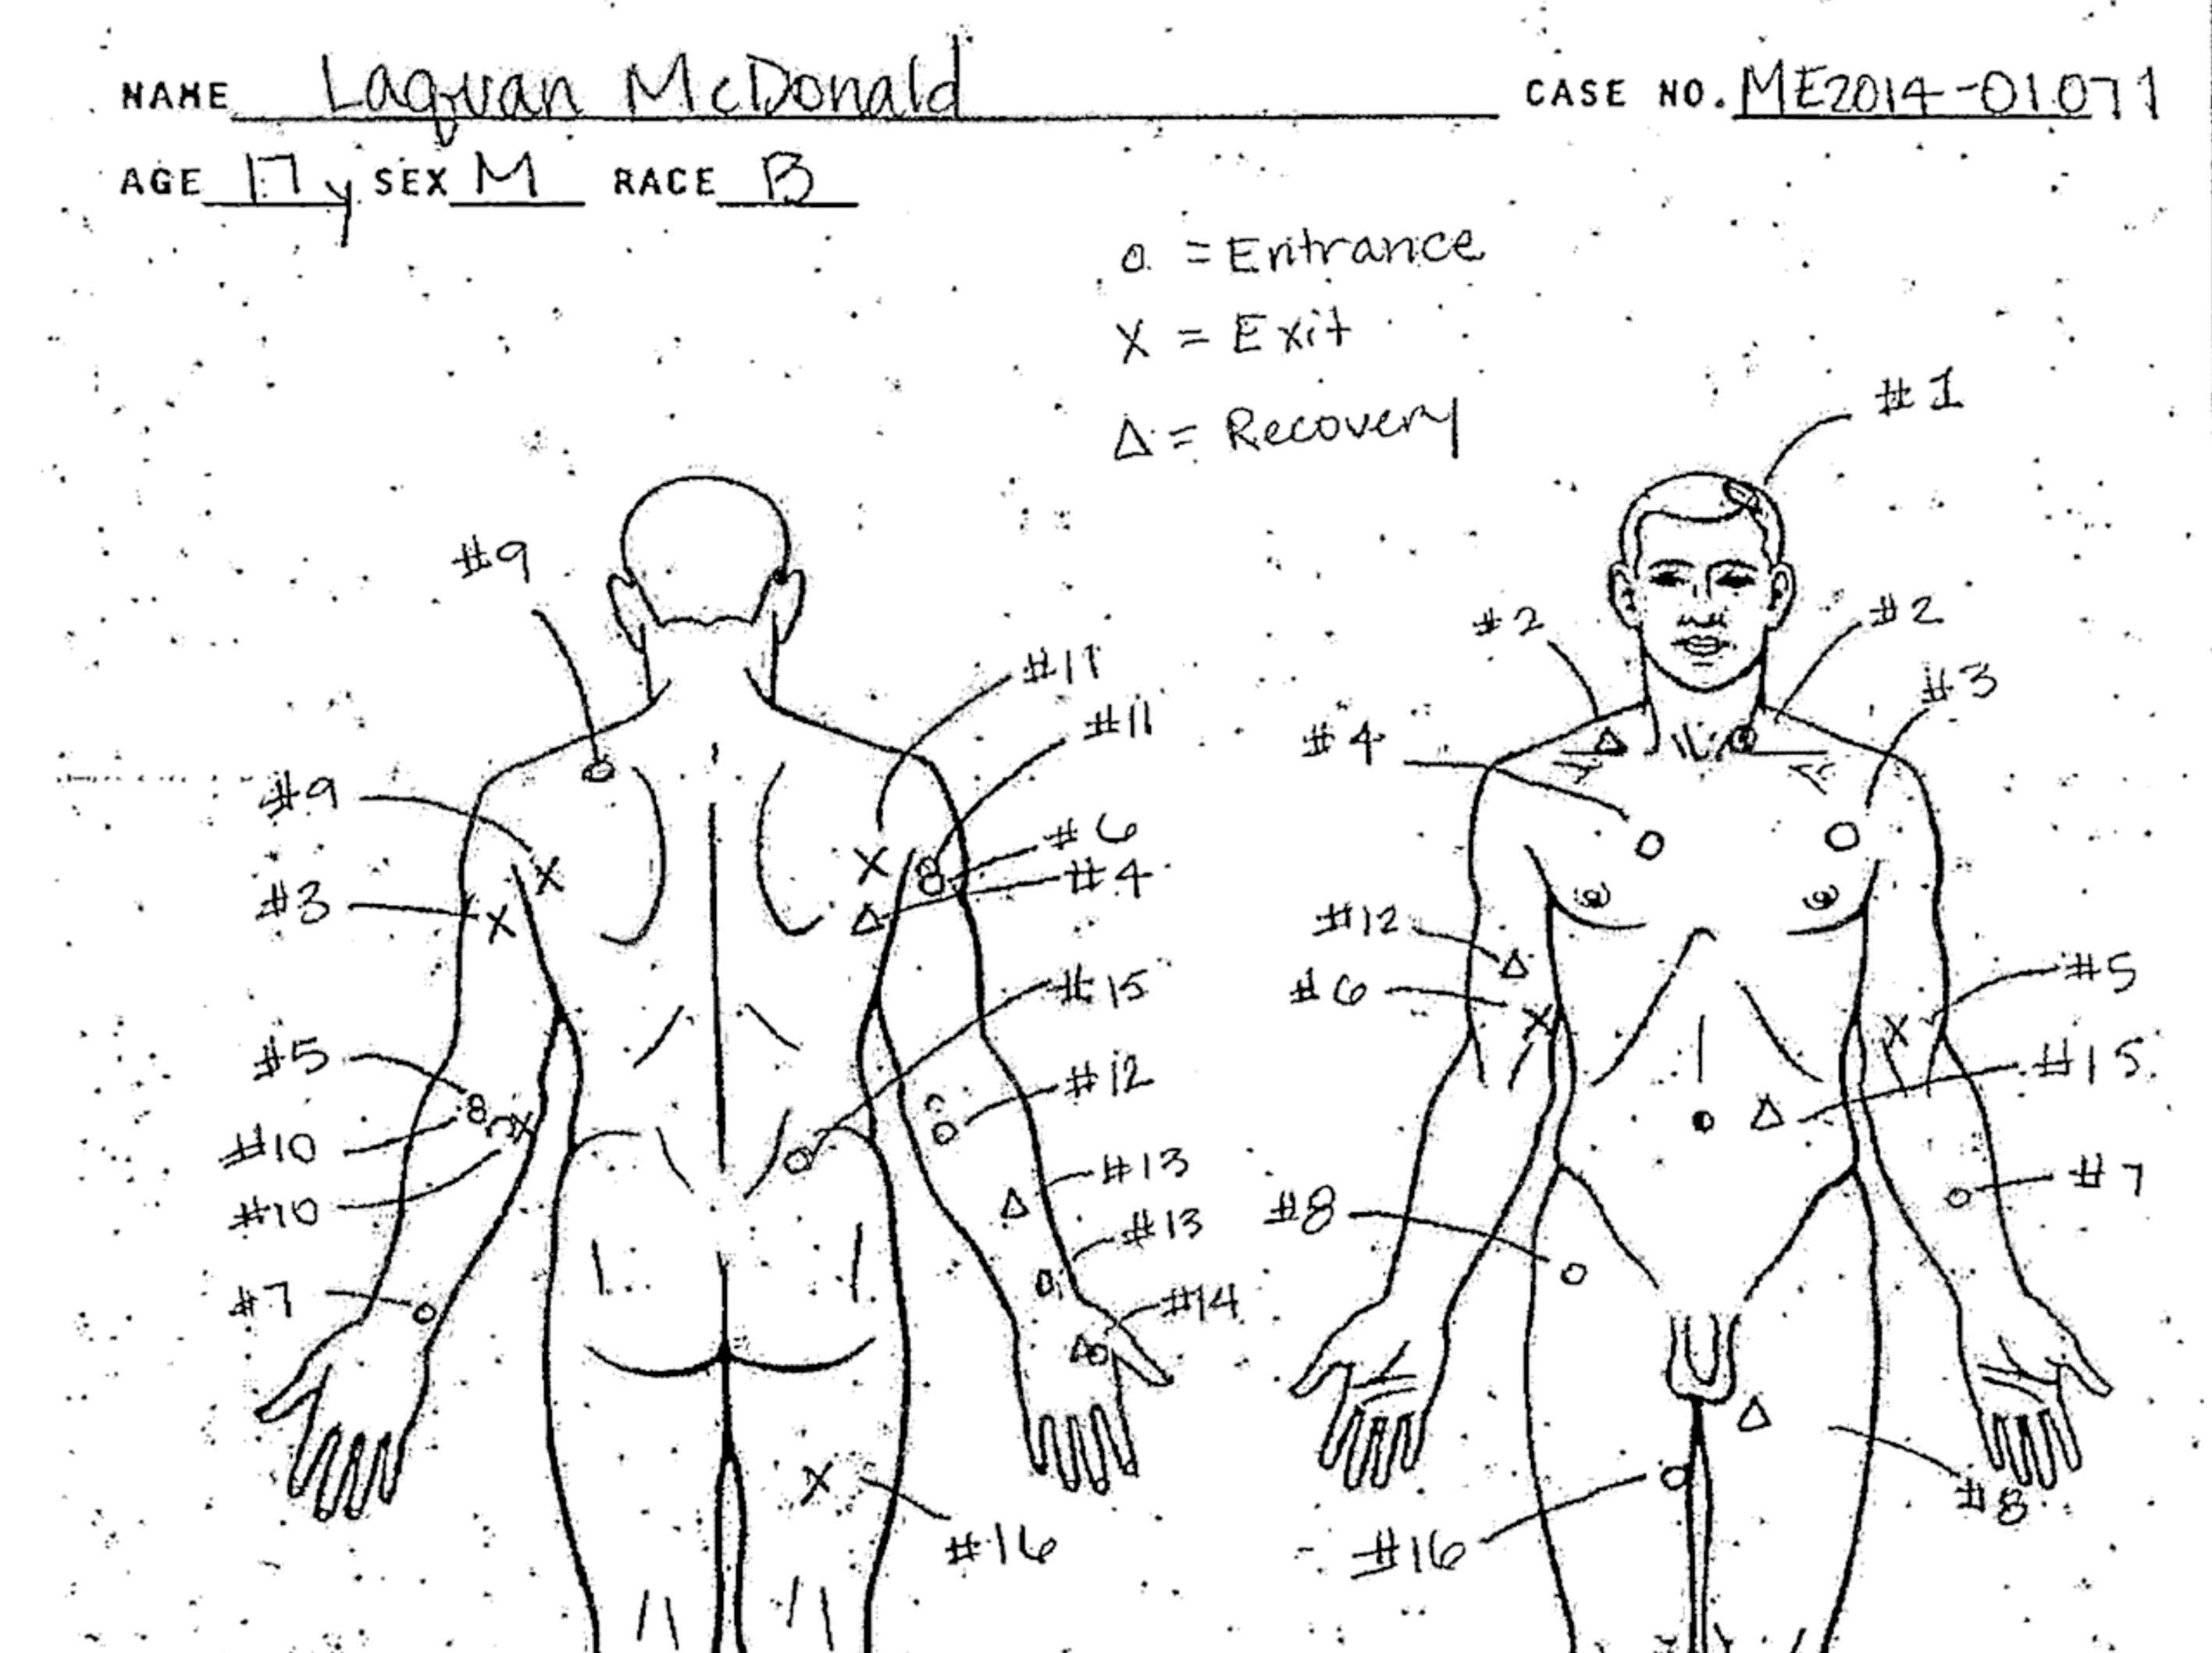 A handout image provided by the Office of the Medical Examiner of Cook County, Illinois, on Nov. 24, 2015, shows a diagram of bullet holes allegedly suffered by 17 year-old Laquan McDonald in a police shooting incident in October 2014. The 17 year-old was allegedly shot 16 times by Chicago Police Officer Jason Van Dyke on 20 October 2014.